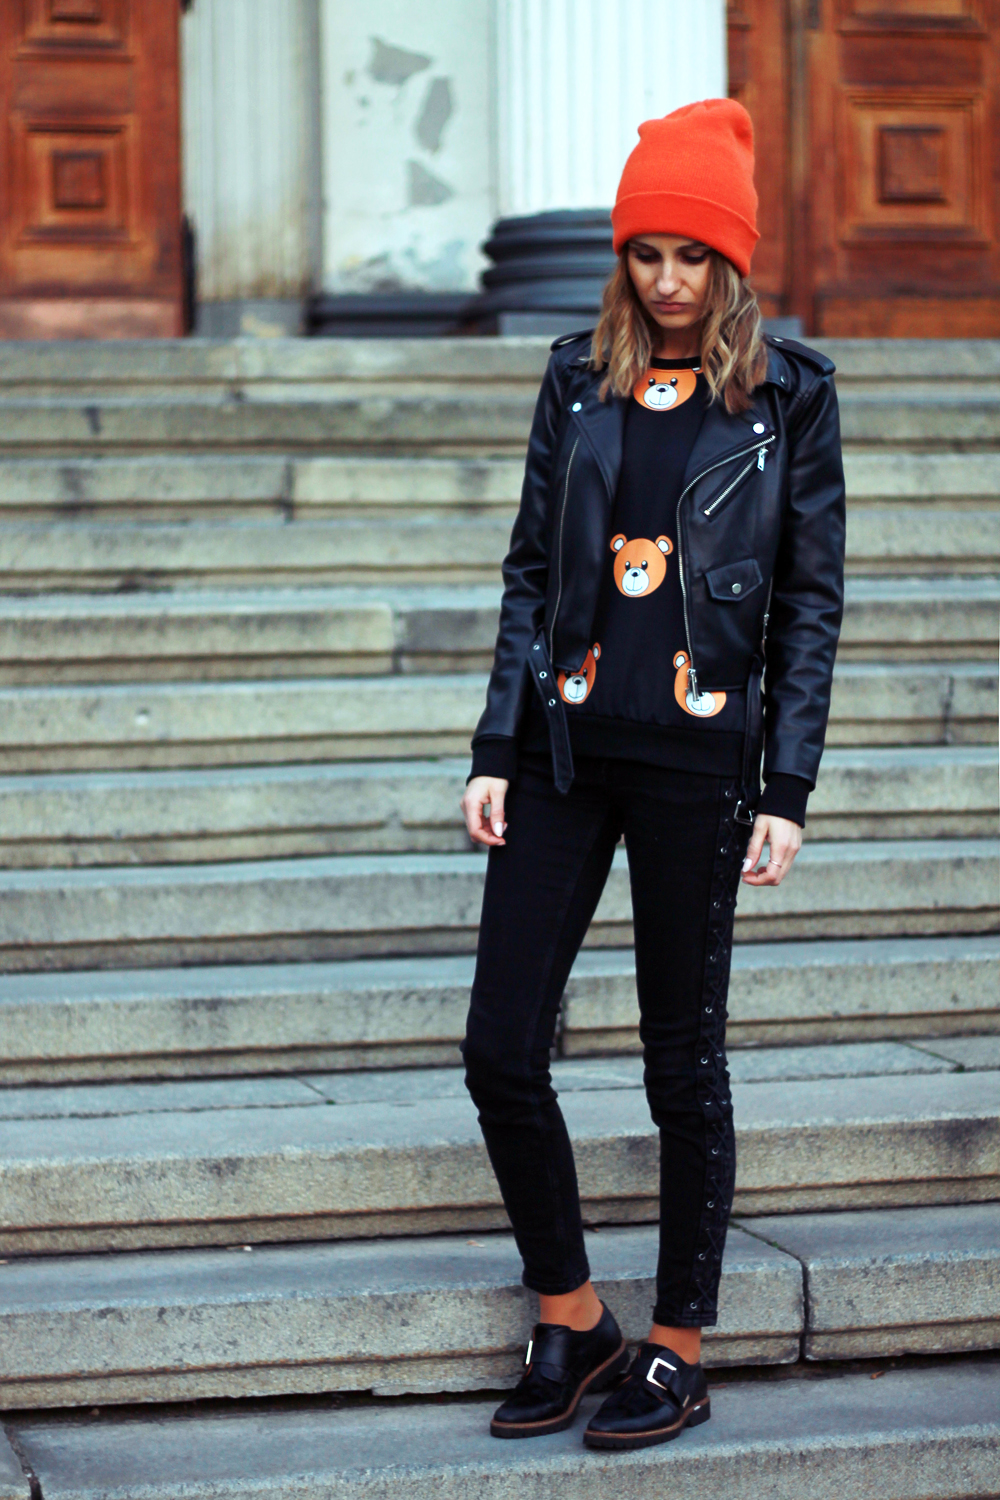 fashion love street style grunge bear sweatshirt zara tumblr girl casual ootd